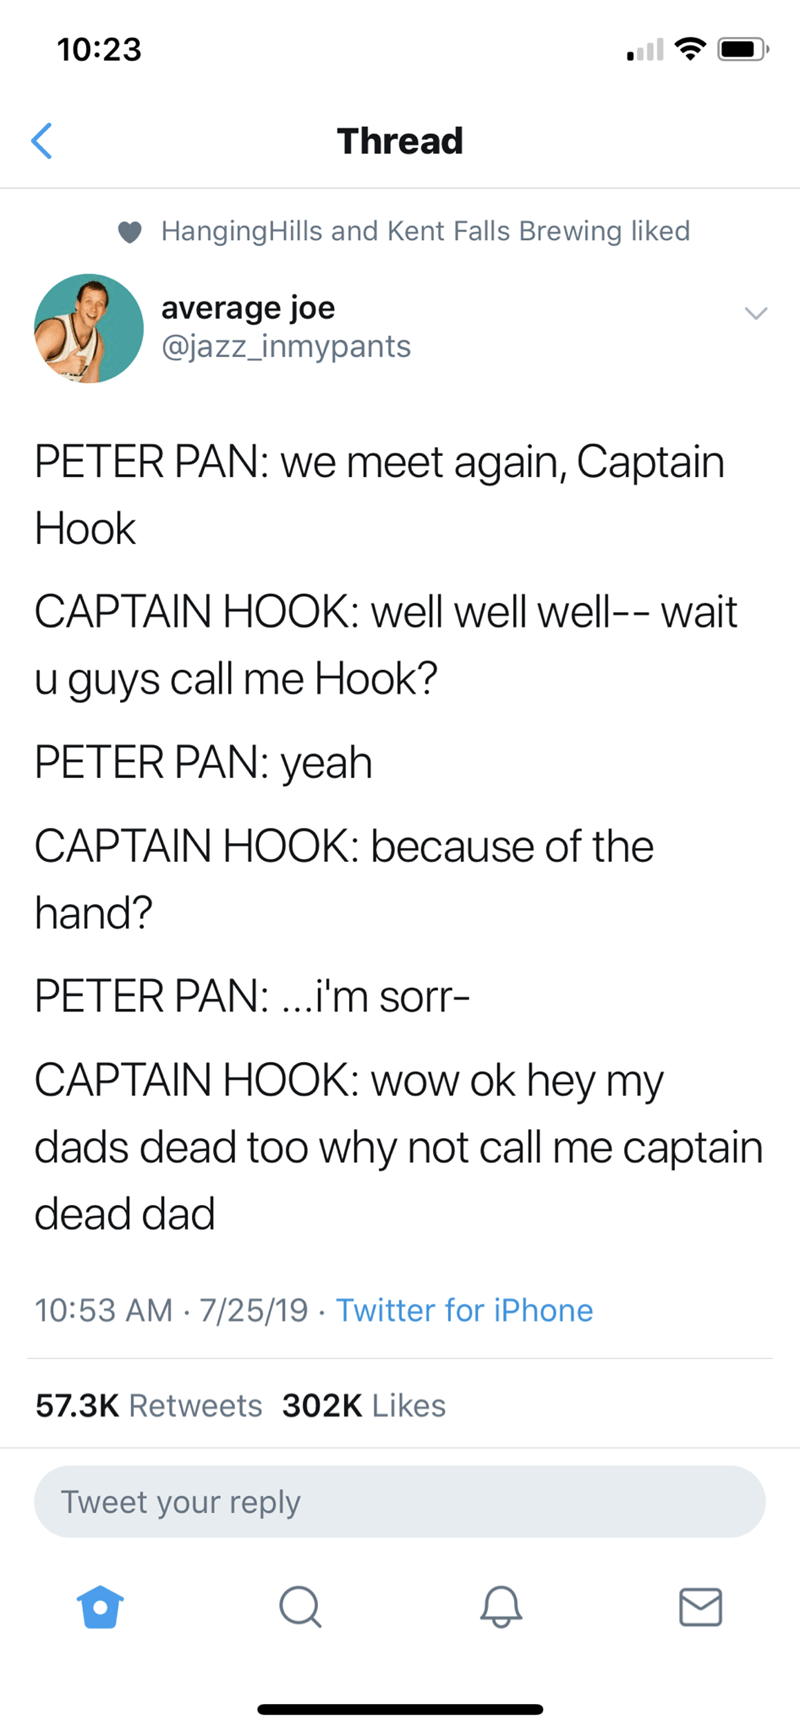 Text - 10:23 Thread HangingHills and Kent Falls Brewing liked average joe @jazz_inmypants PETER PAN: we meet again, Captain Нook CAPTAIN HOOK: well well well-- wait u guys call me Hook? PETER PAN: yeah CAPTAIN HOOK: because of the hand? PETER PAN:...i'm sorr- CAPTAIN HOOK: wow ok hey my dads dead too why not call me captain dead dad 10:53 AM · 7/25/19 · Twitter for iPhone 57.3K Retweets 302K Likes Tweet your reply